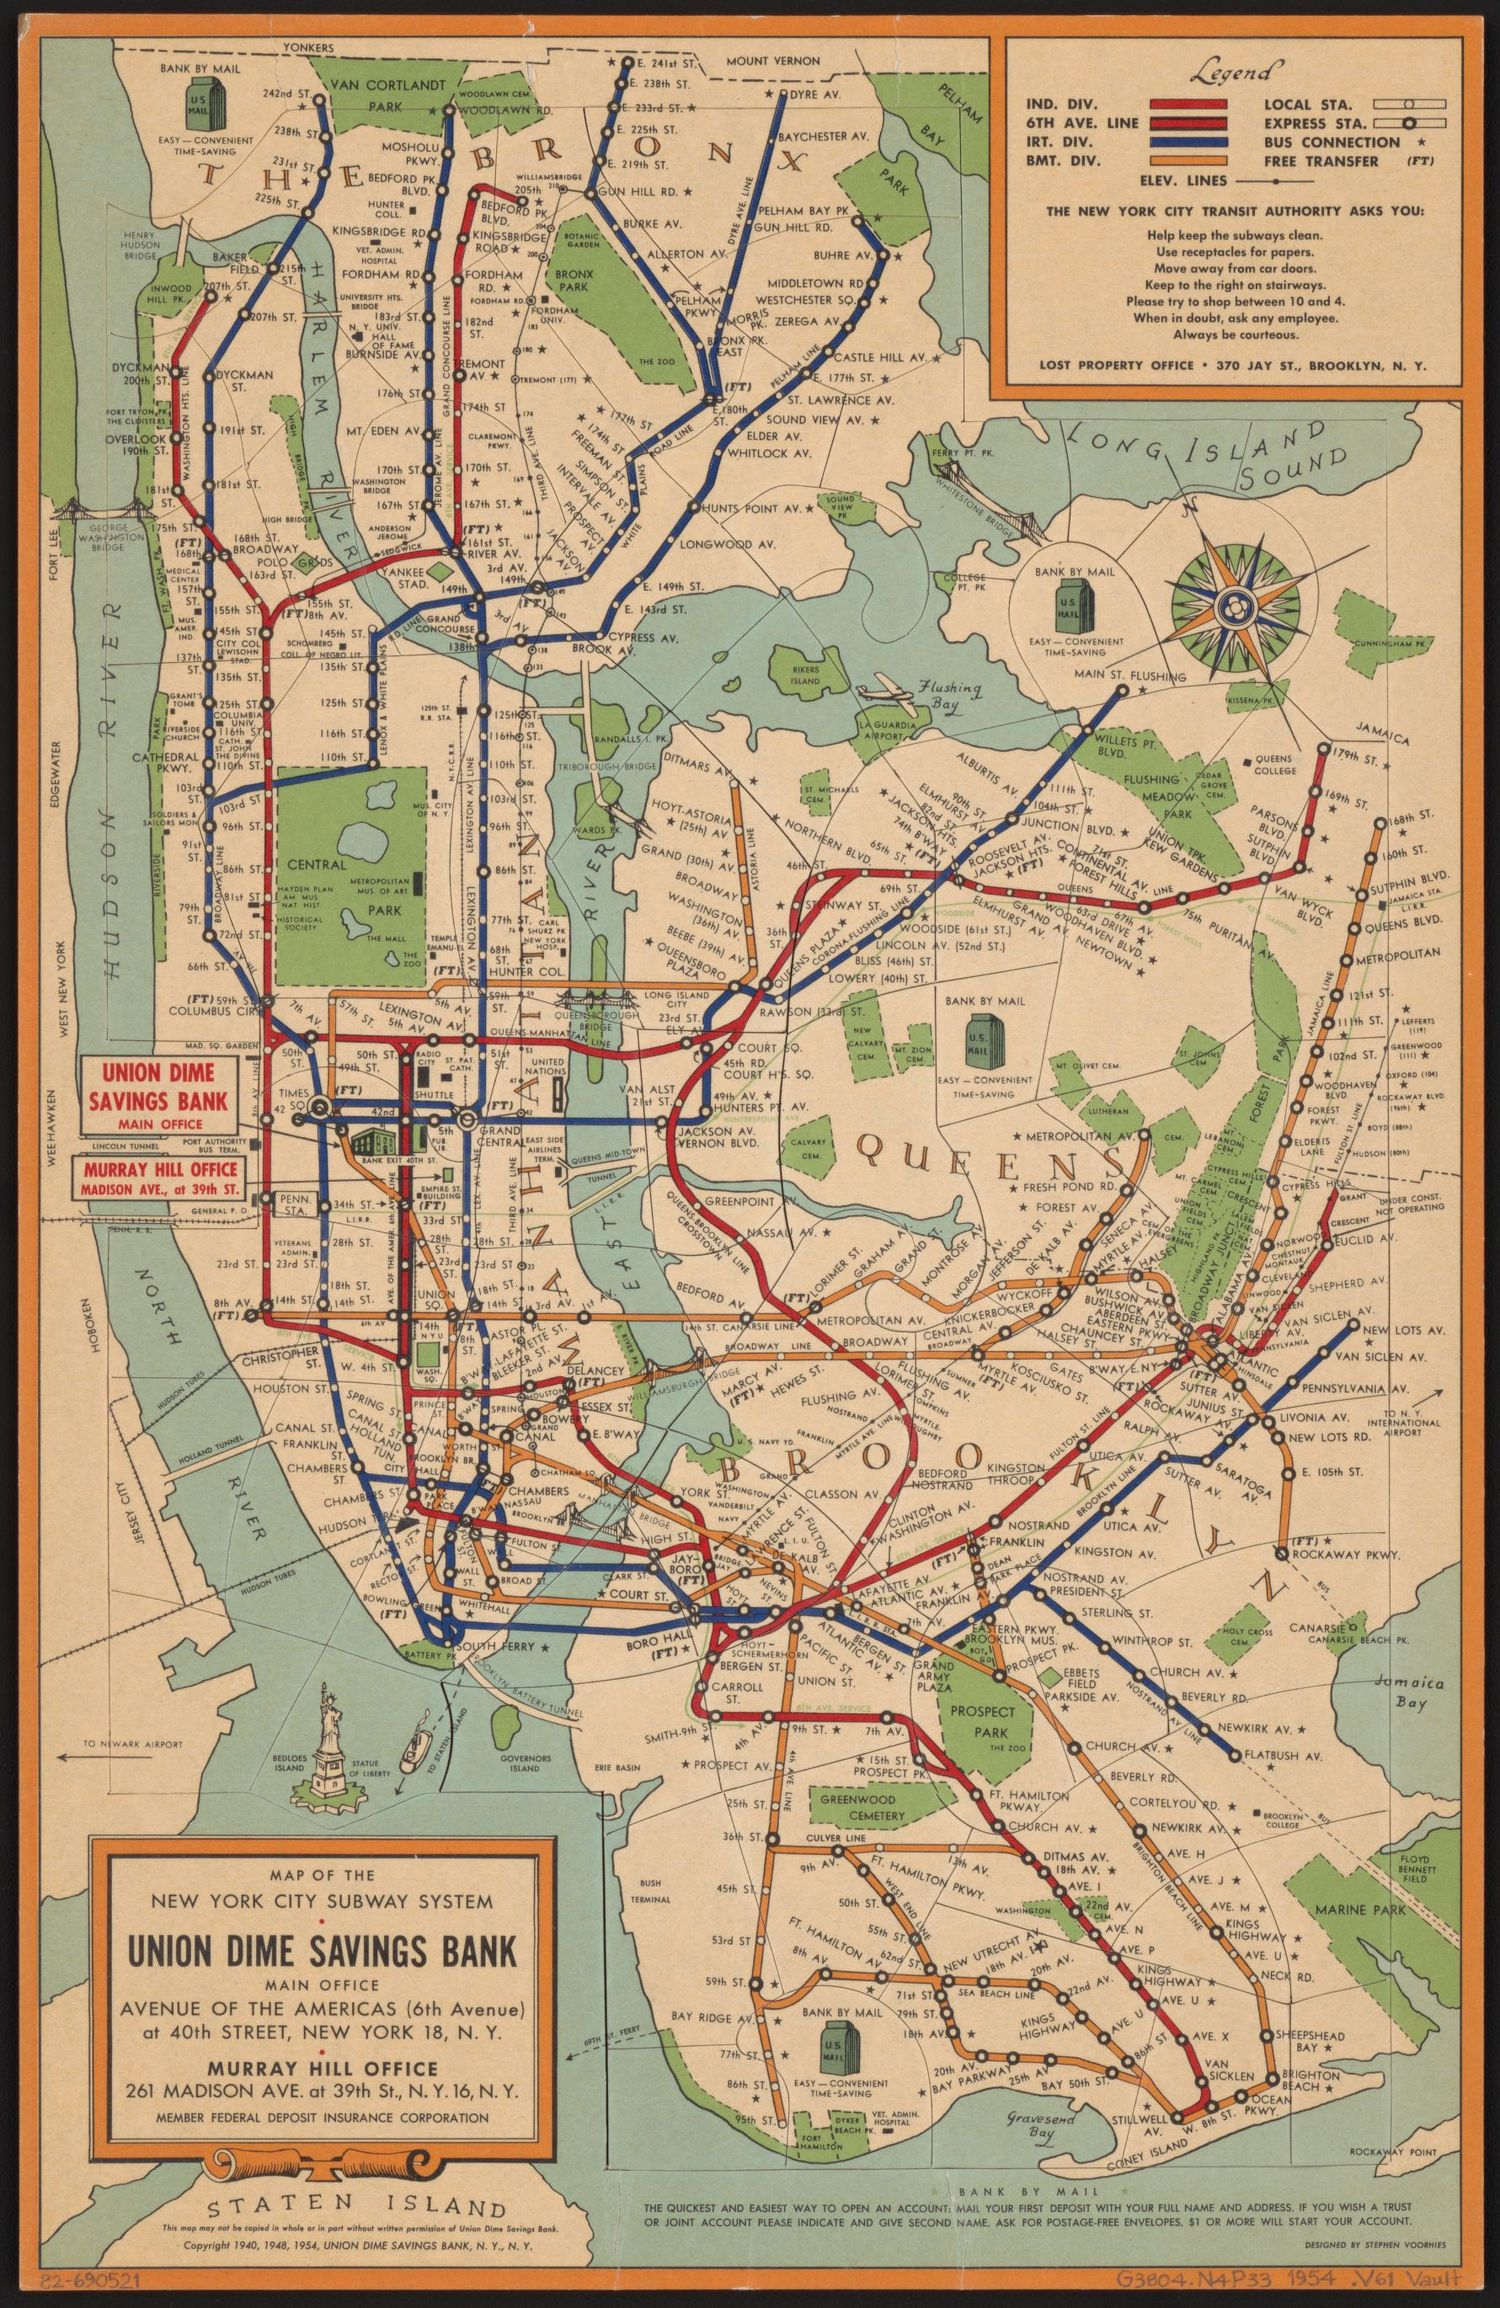 Subway Map For New York City.Maps Vintage Map Shows New York City Subway System In 1954